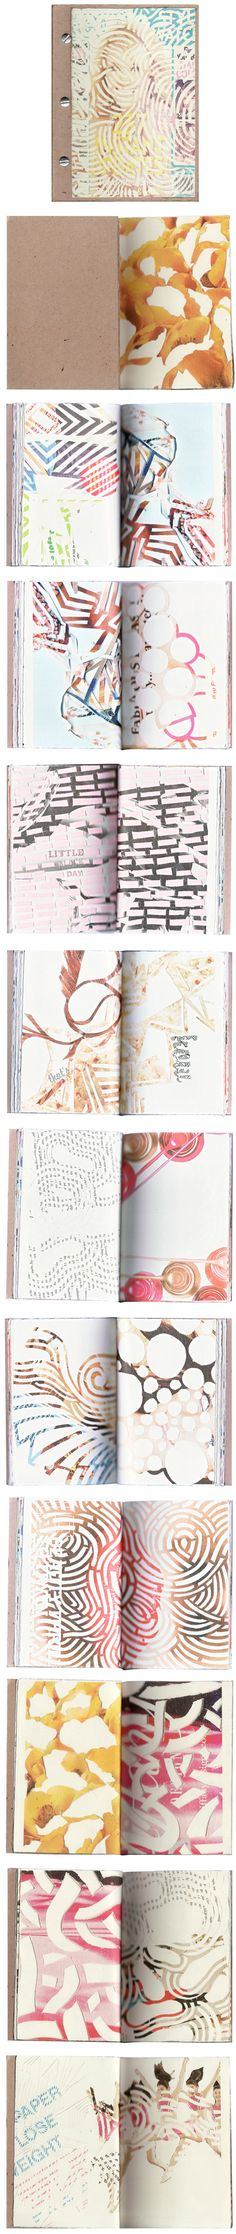 The Jealous Curator /// curated contemporary art /// sketchbook Books Art, Sketchbook Pages, Sketchbook Ideas, Sketchbook Inspiration, Paper Art, Cut Paper, Paper Cutting, Moleskine, Grafik Design